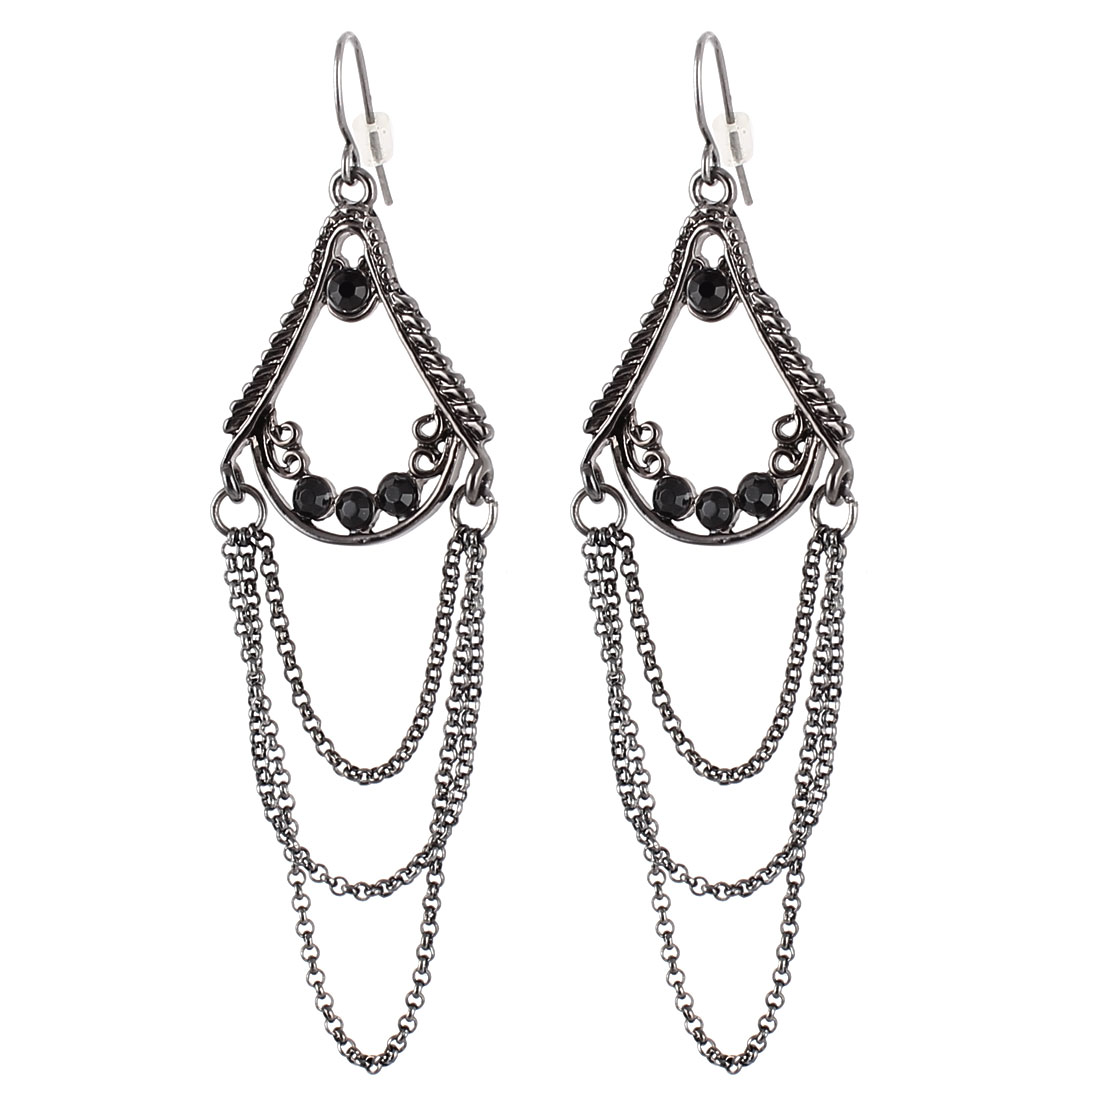 "3"" Length Black Metal Connected Both Ends Chain Tassels Spire Tower Shape Dangling Pendant Fish Hook Earrings Earbob Pair for Lady Women"